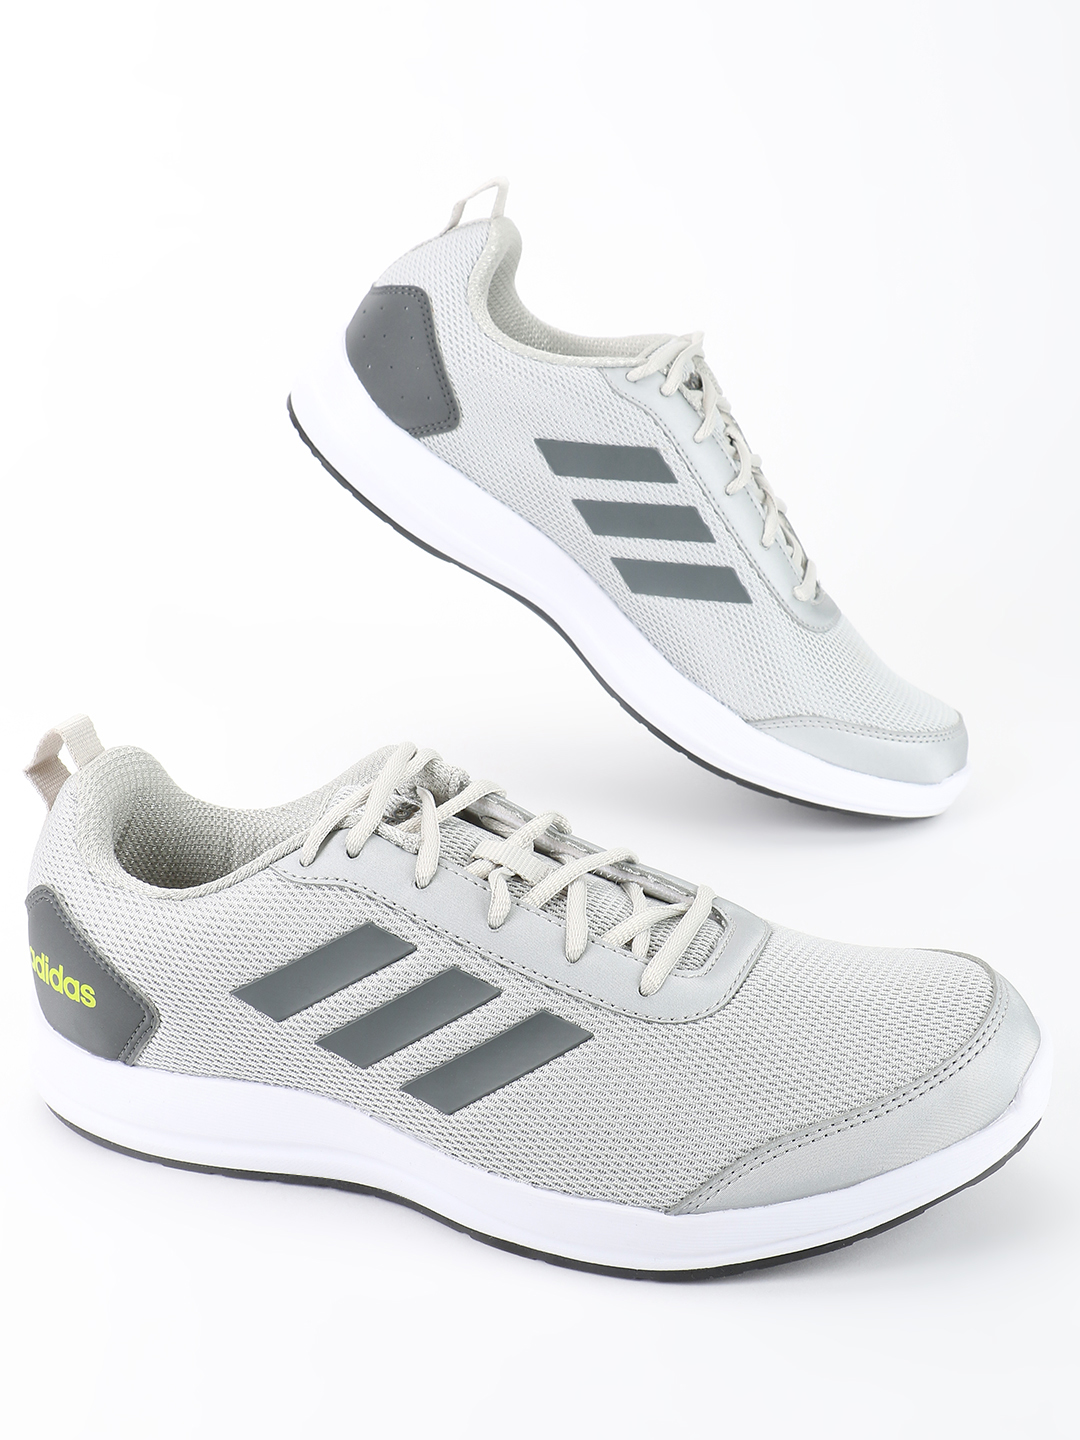 Adidas Silver YKing 2.0 Shoes 1